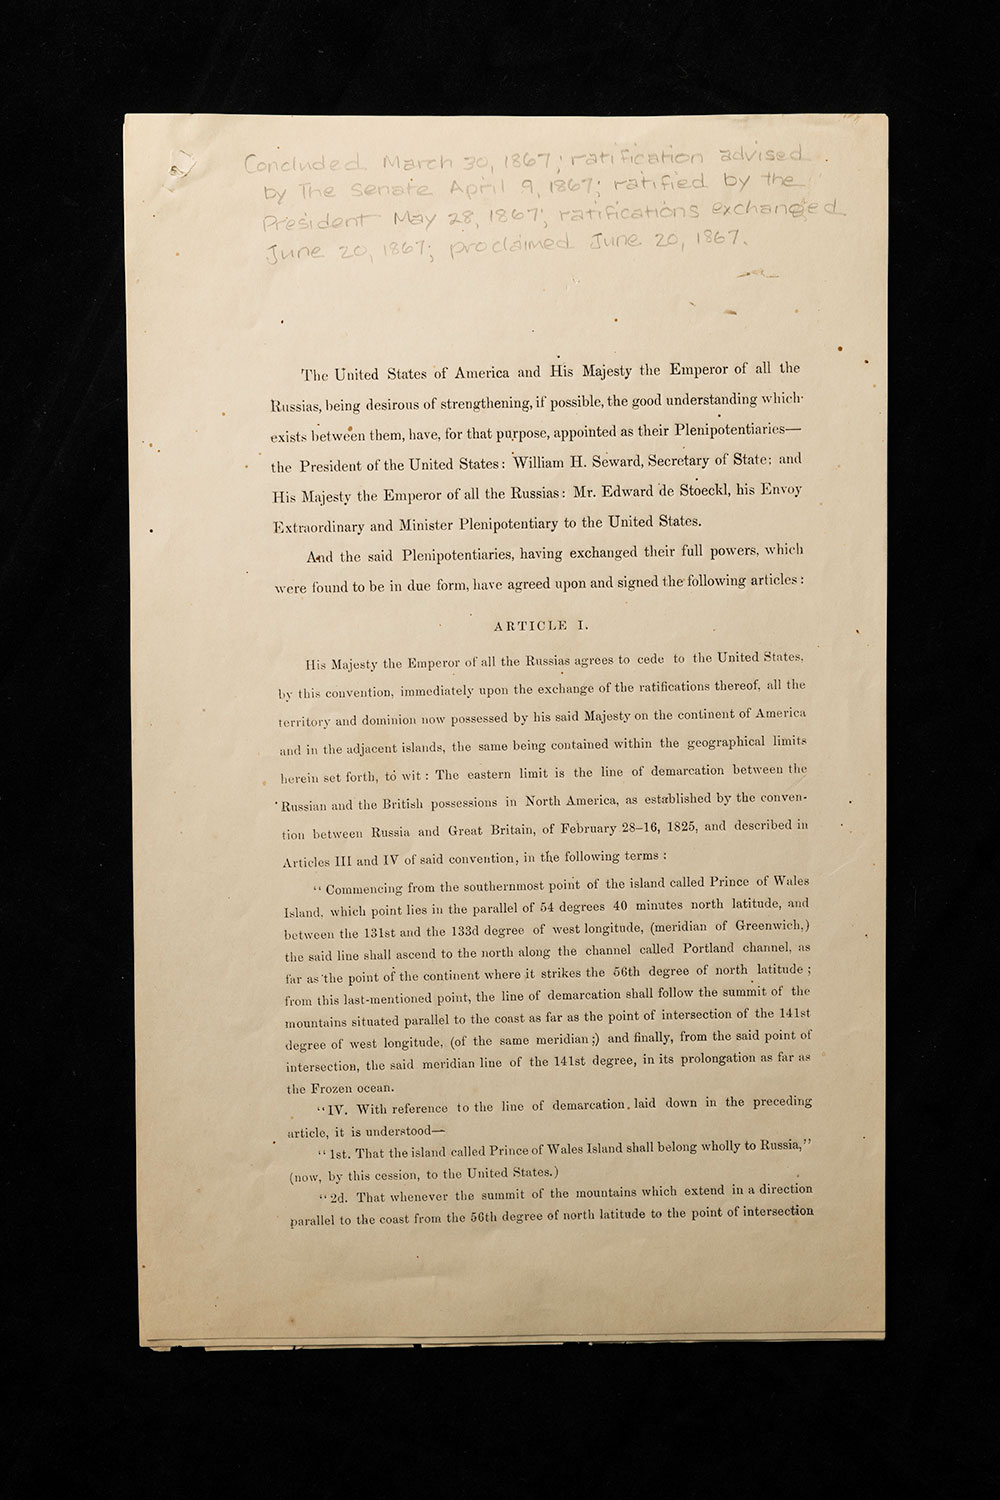 document shows the first page of the treaty between the United States and Russia